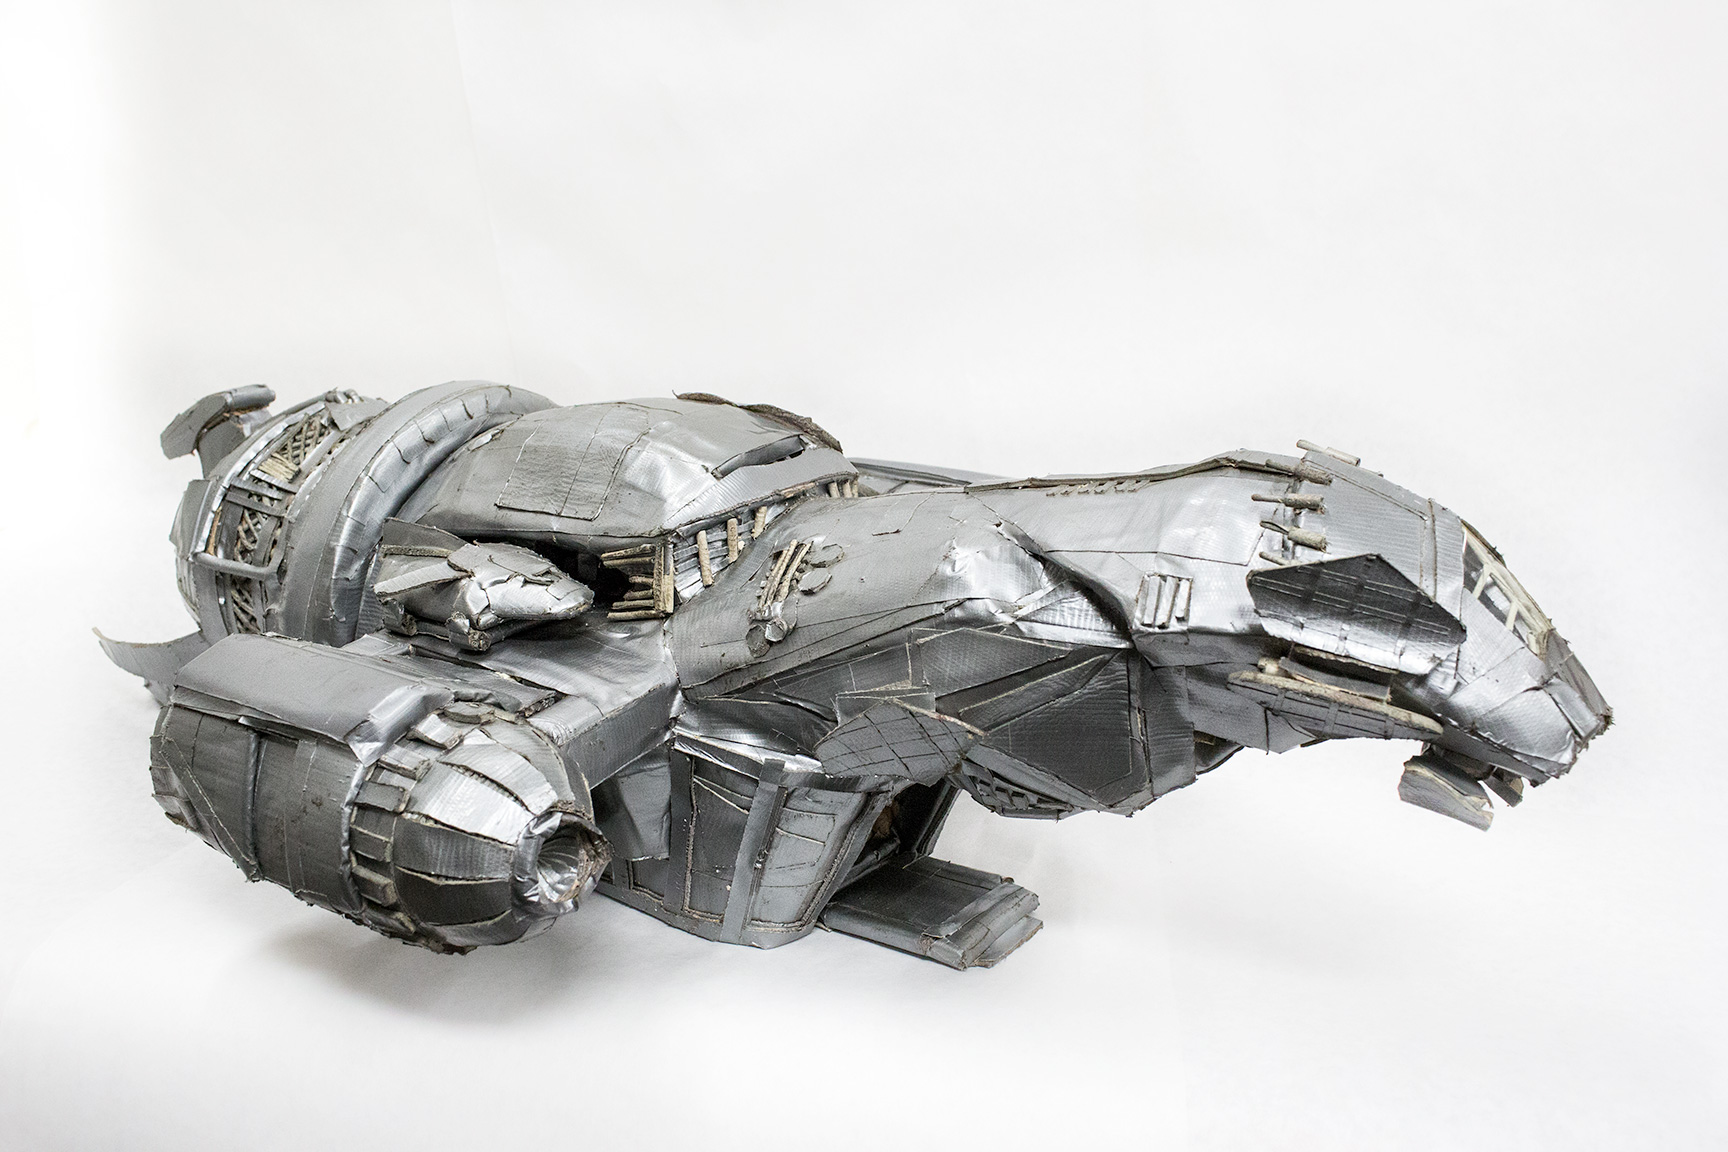 Duct Tape Serenity: 23 lbs of tape, 27 Rolls, 120 Hours (Click for more pictures!)